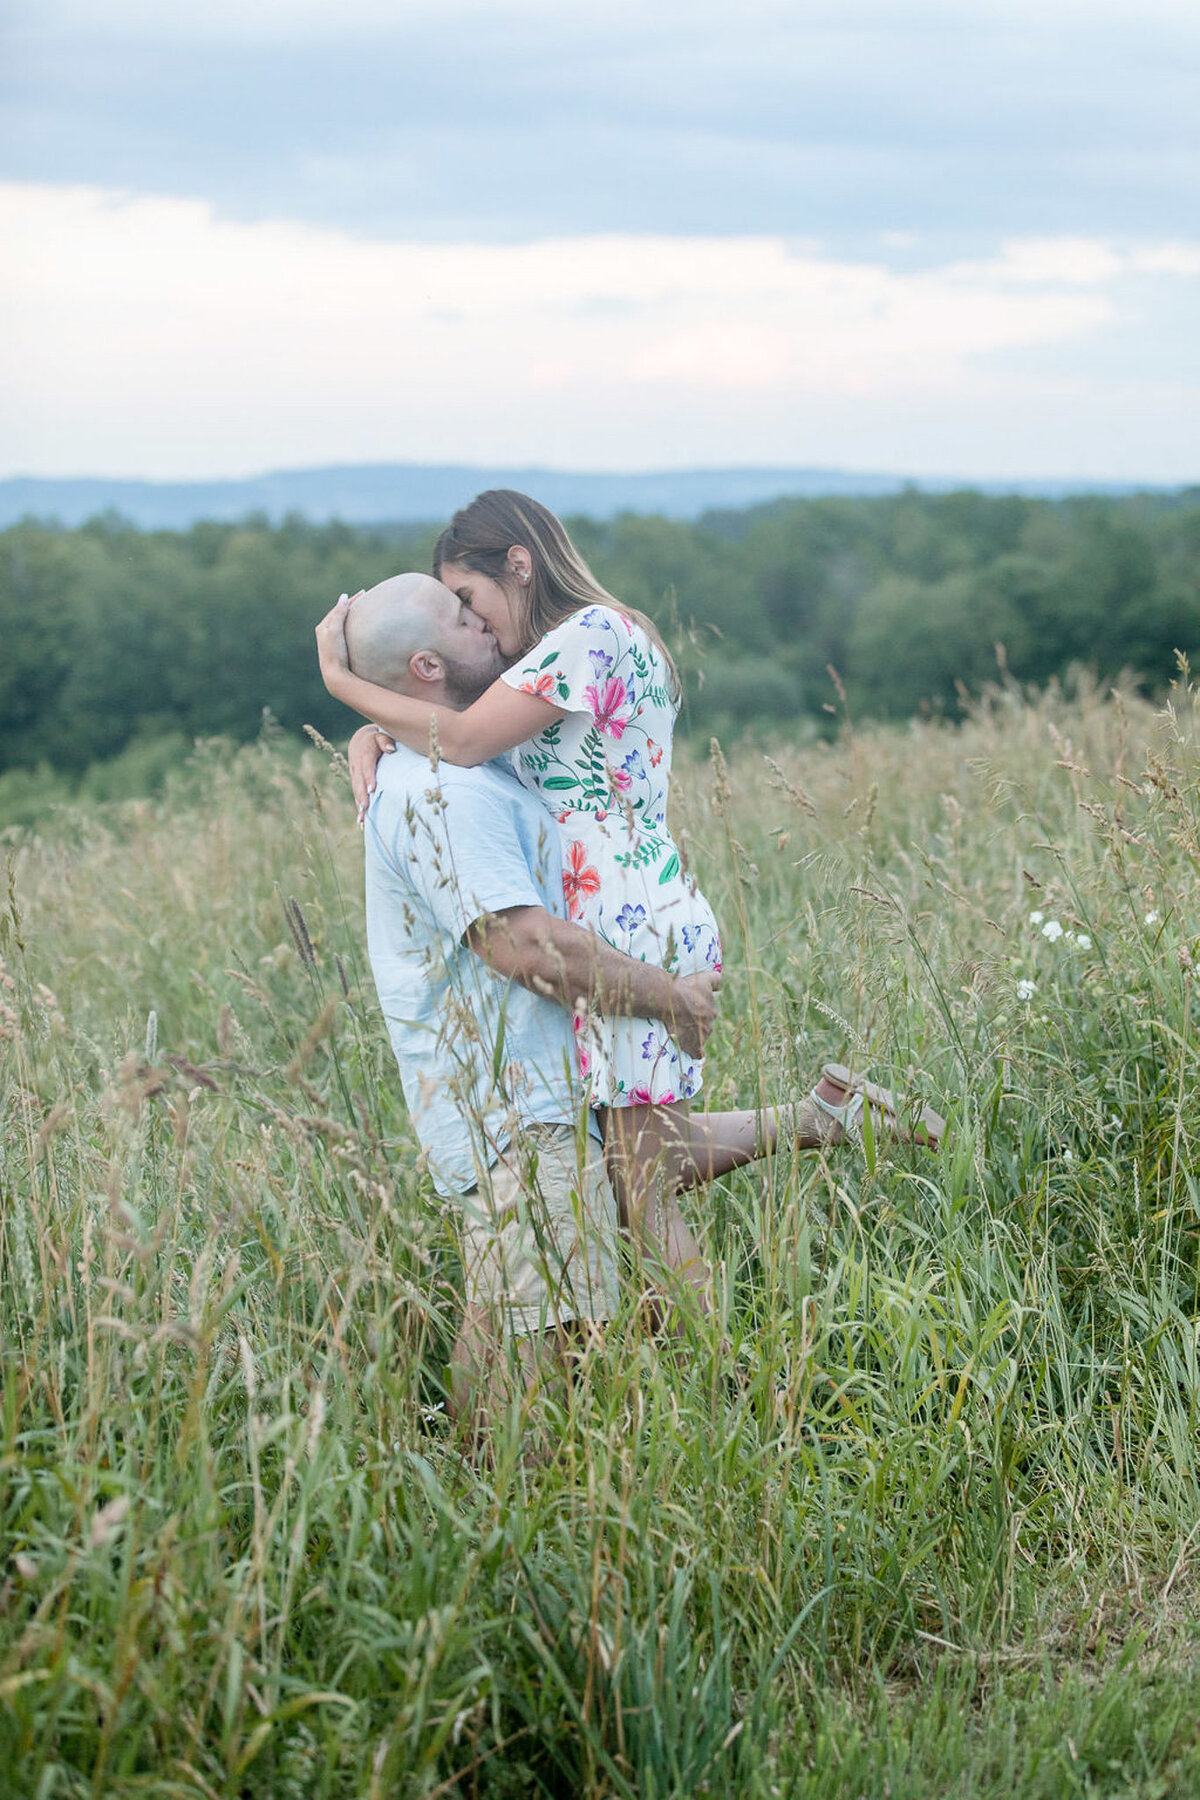 Rachel-Elise-Photography-Syracuse-New-York-Engagement-Shoot-Photographer-31